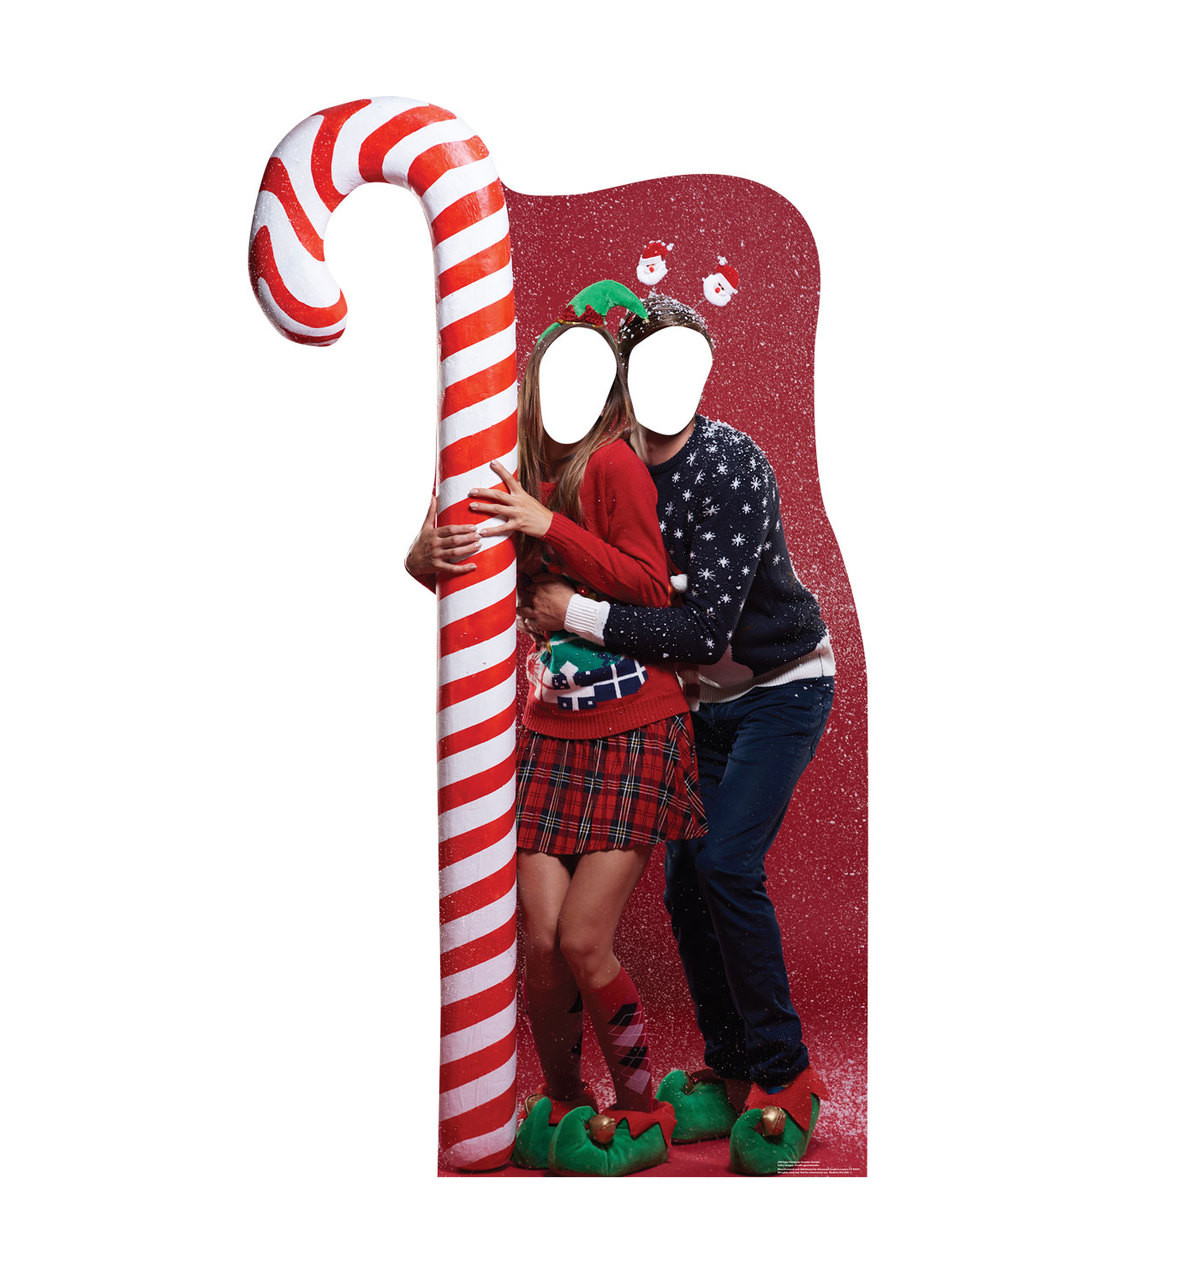 Ugly Christmas Sweater with CandUgly Christmas Sweater with Candy Cane Standin   Cardboard Cutouty Cane Stand-in-frontview